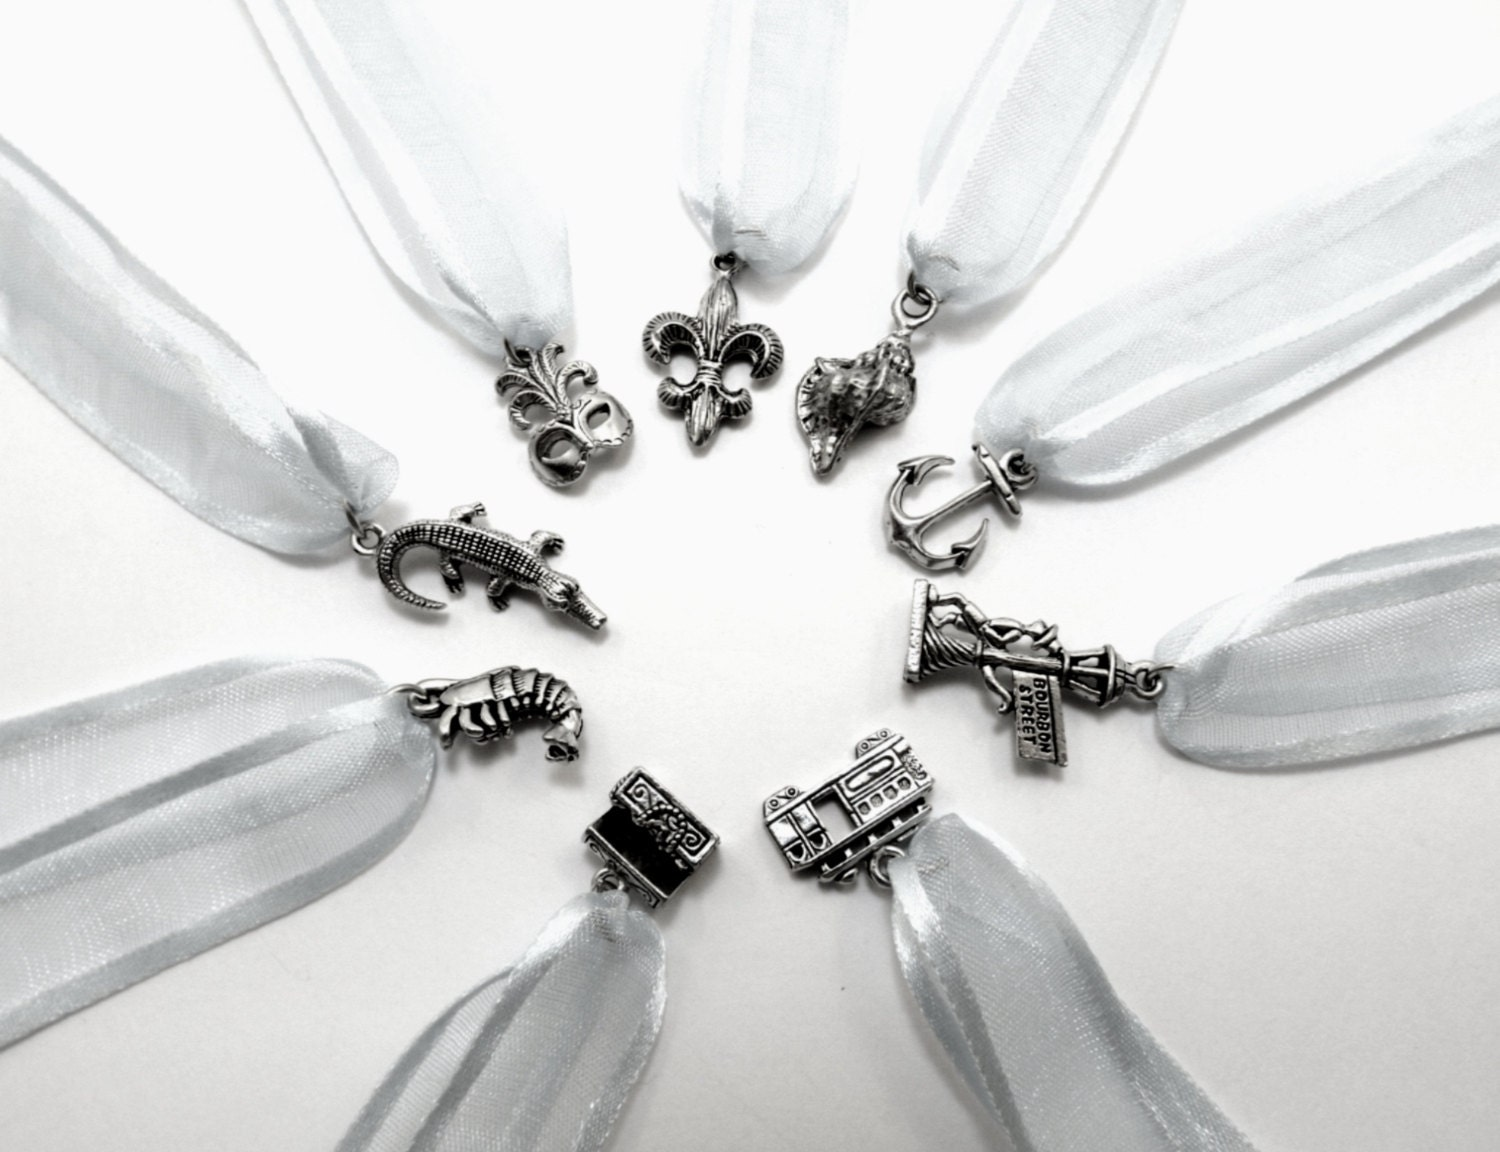 wedding cake pull charms new orleans theme pewter set of. Black Bedroom Furniture Sets. Home Design Ideas